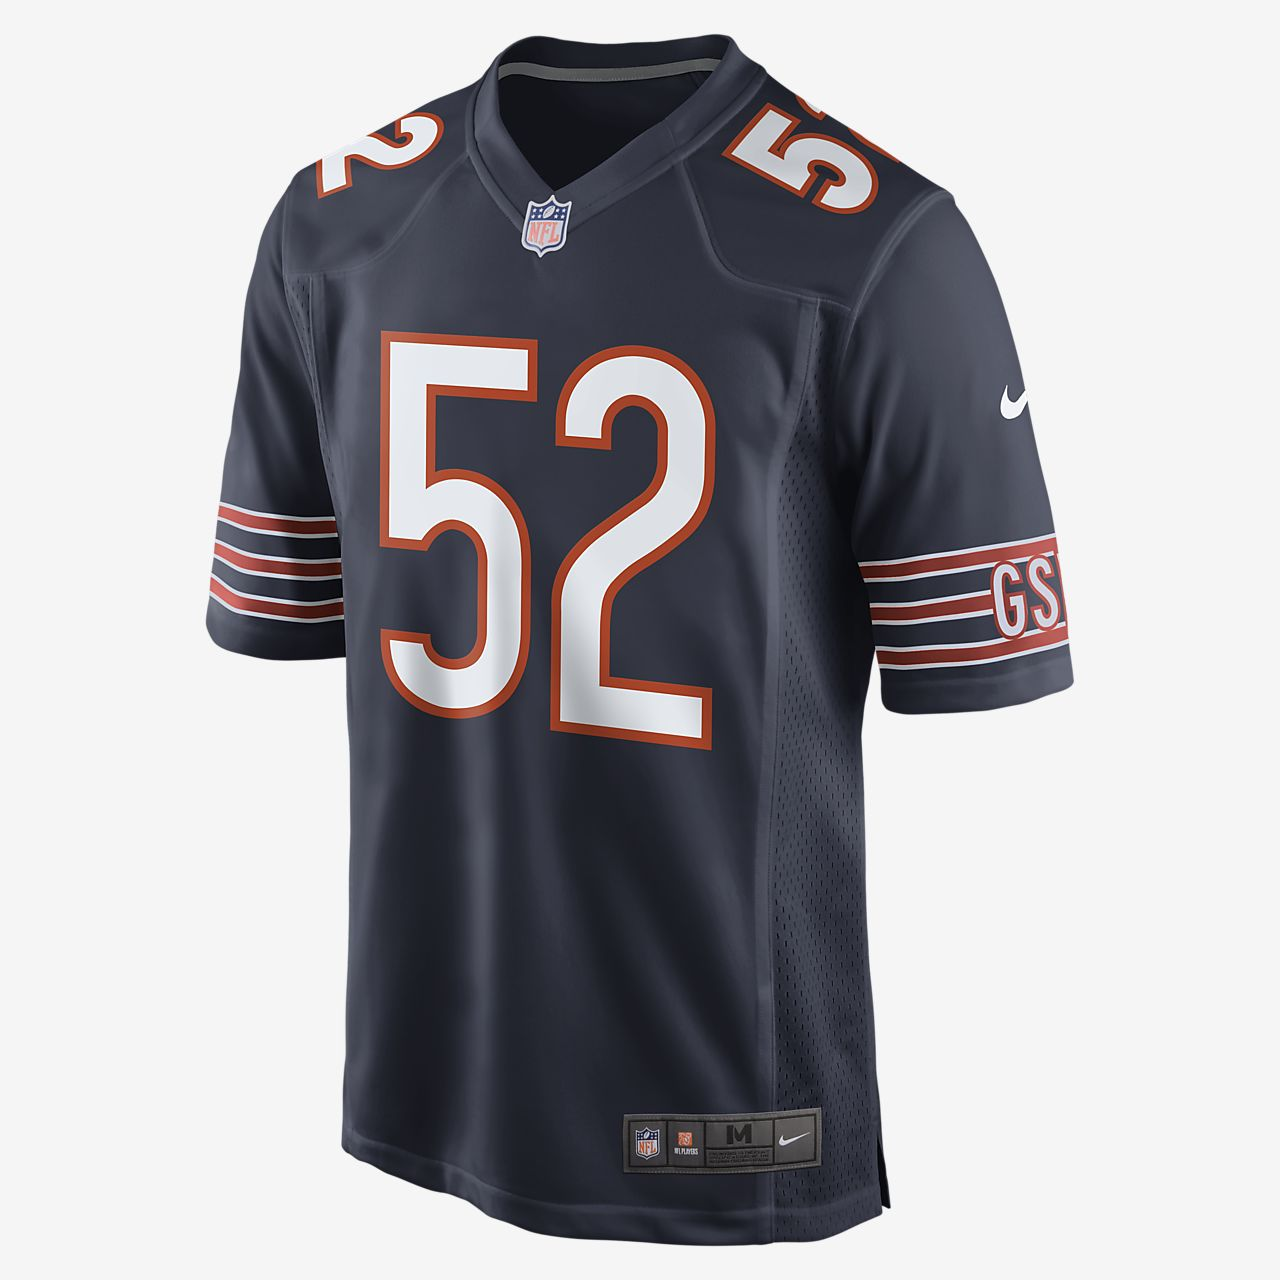 NFL Chicago Bears Men's Game American Football Jersey